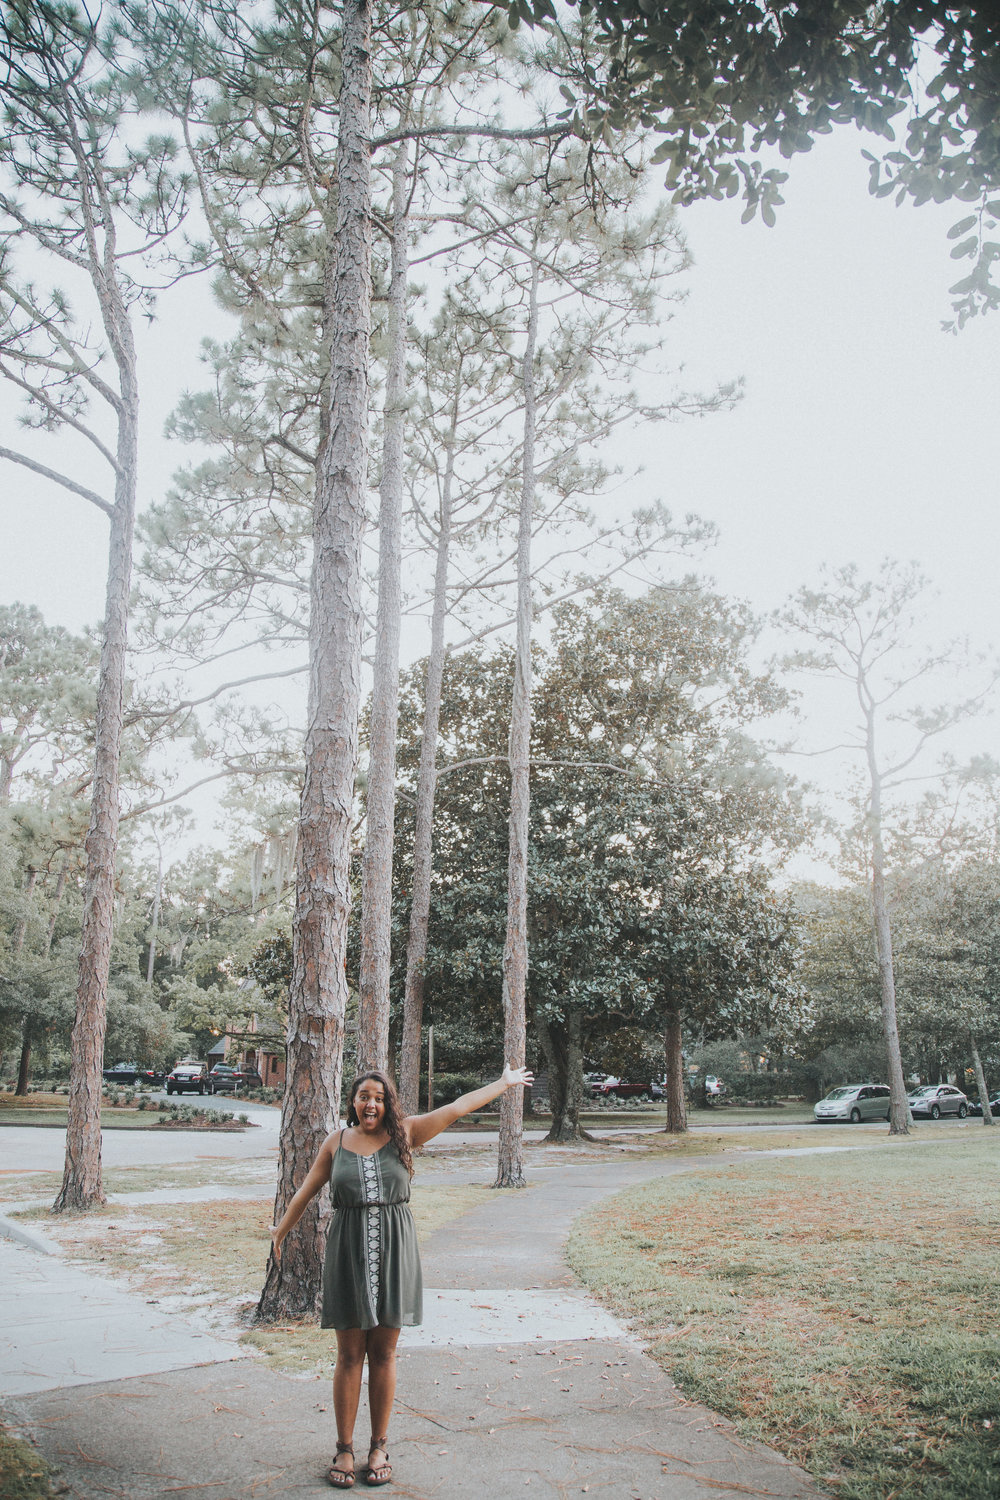 North Carolina in September for our honeymoon was super romantic, affordable, and just really, really dreamy. Geeking out over HIT TV SHOW HOT SPOTS, freakin' amazing Southern beaches, and our little, honeymoon treehouse.